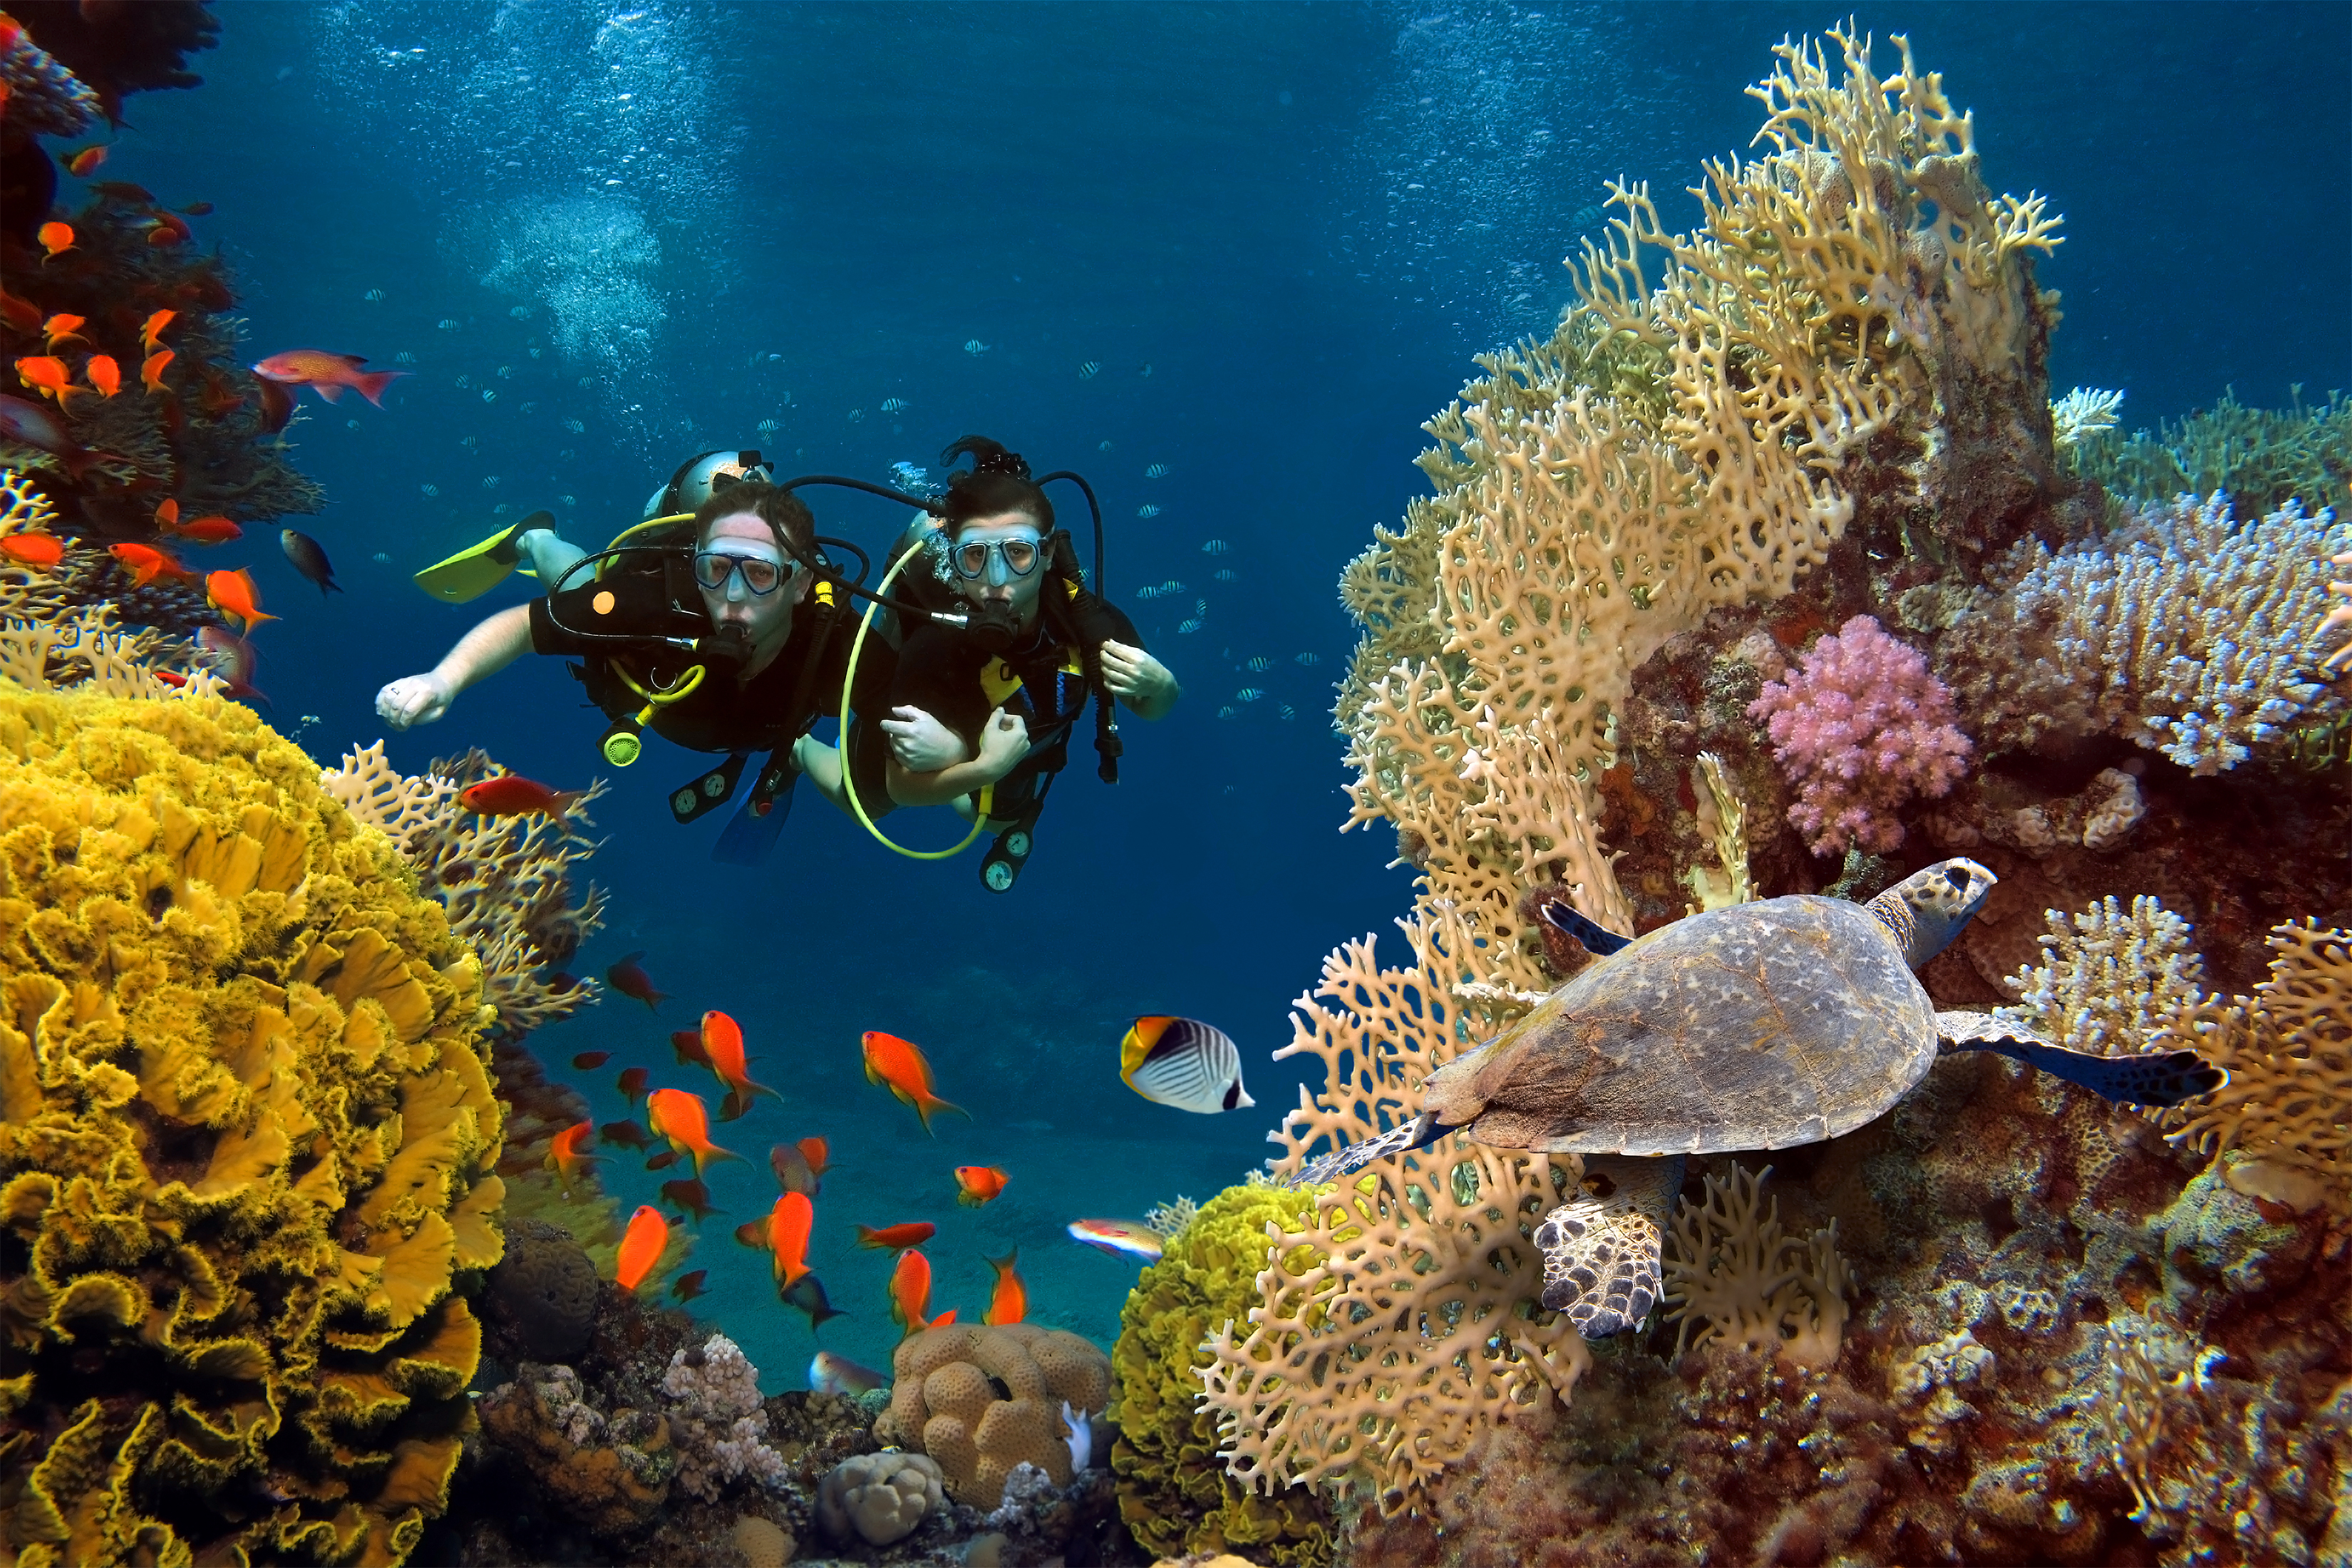 A couple dives near a coral reef.